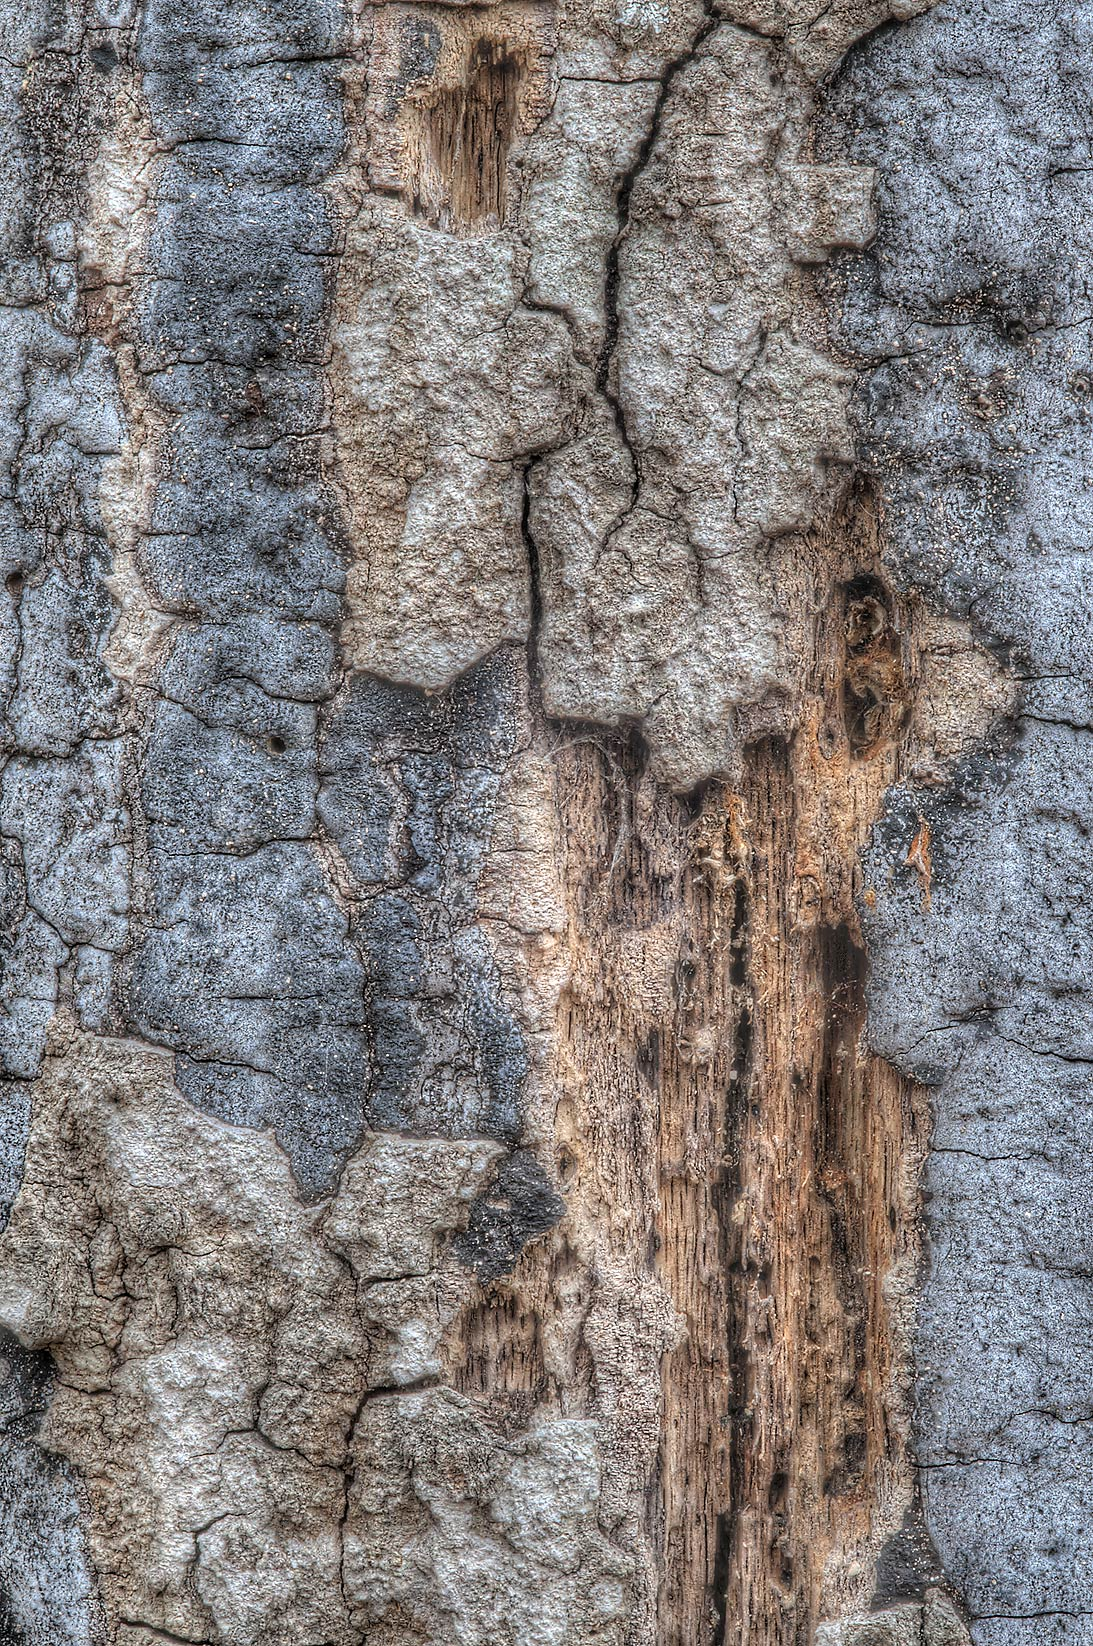 Bark of dead tree near Racoon Run Trail in Lick Creek Park. College Station, Texas